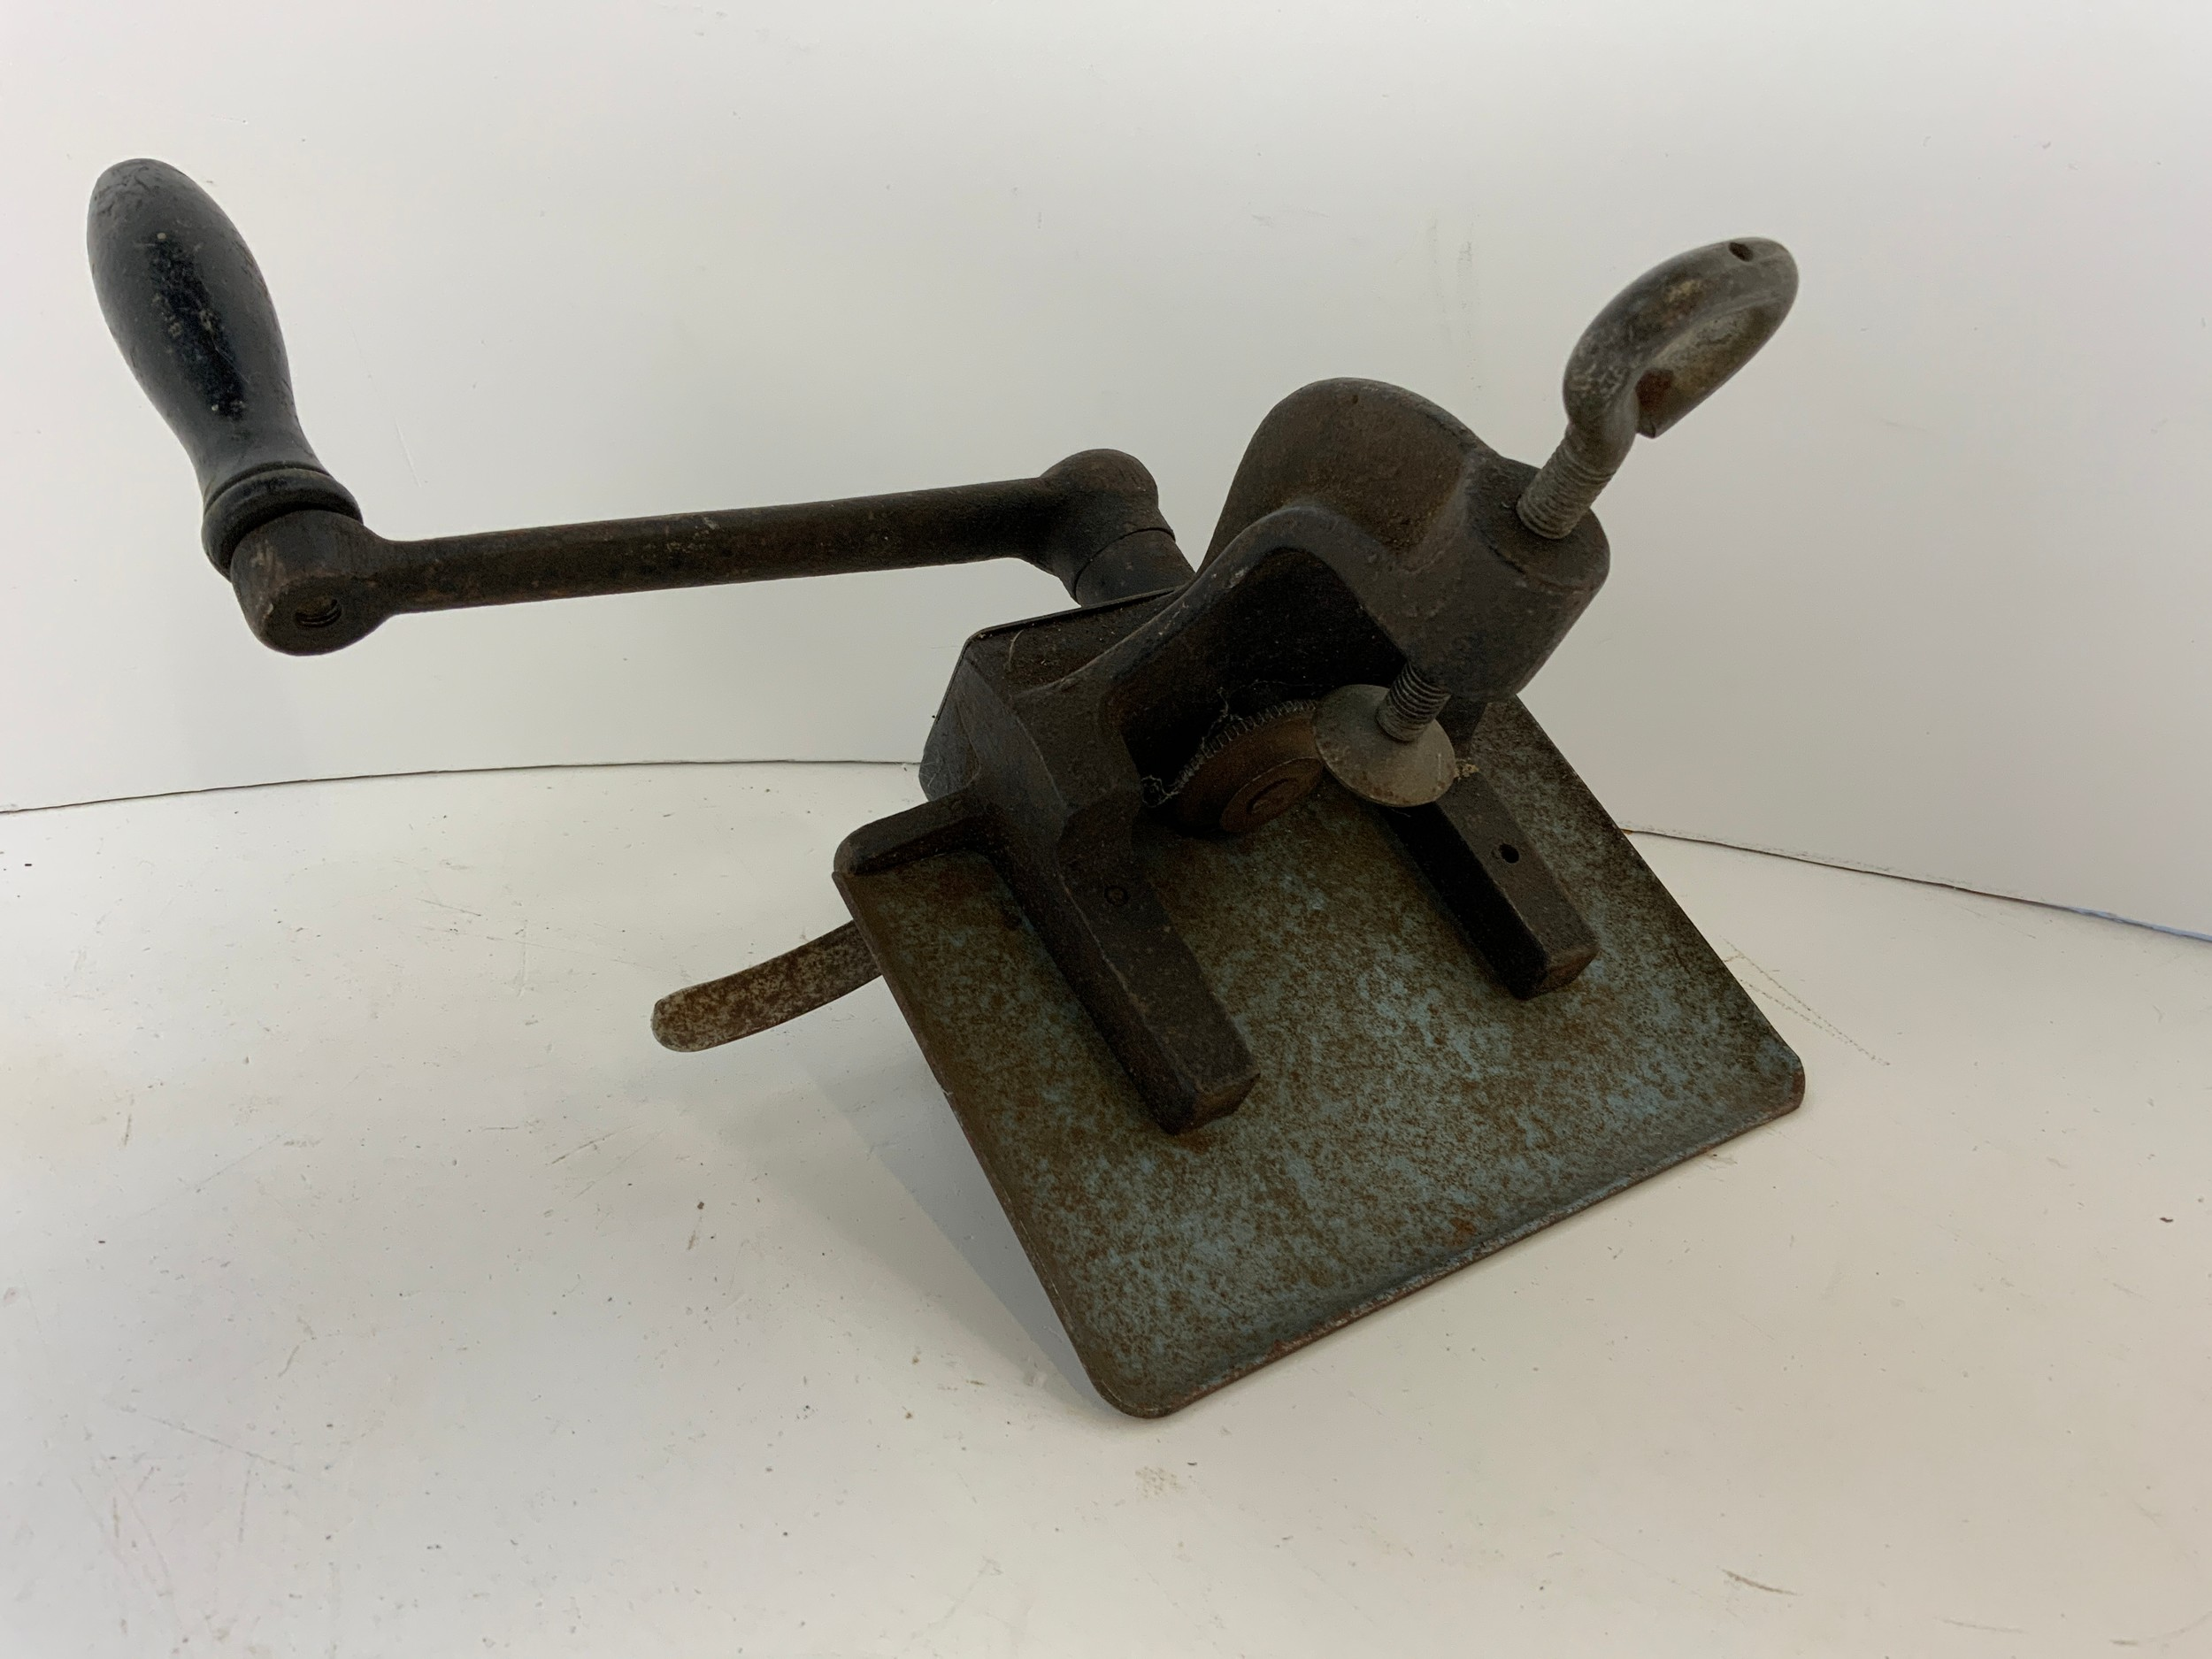 Leather/Card Crimper and Oil Lamp Parts - Image 2 of 2